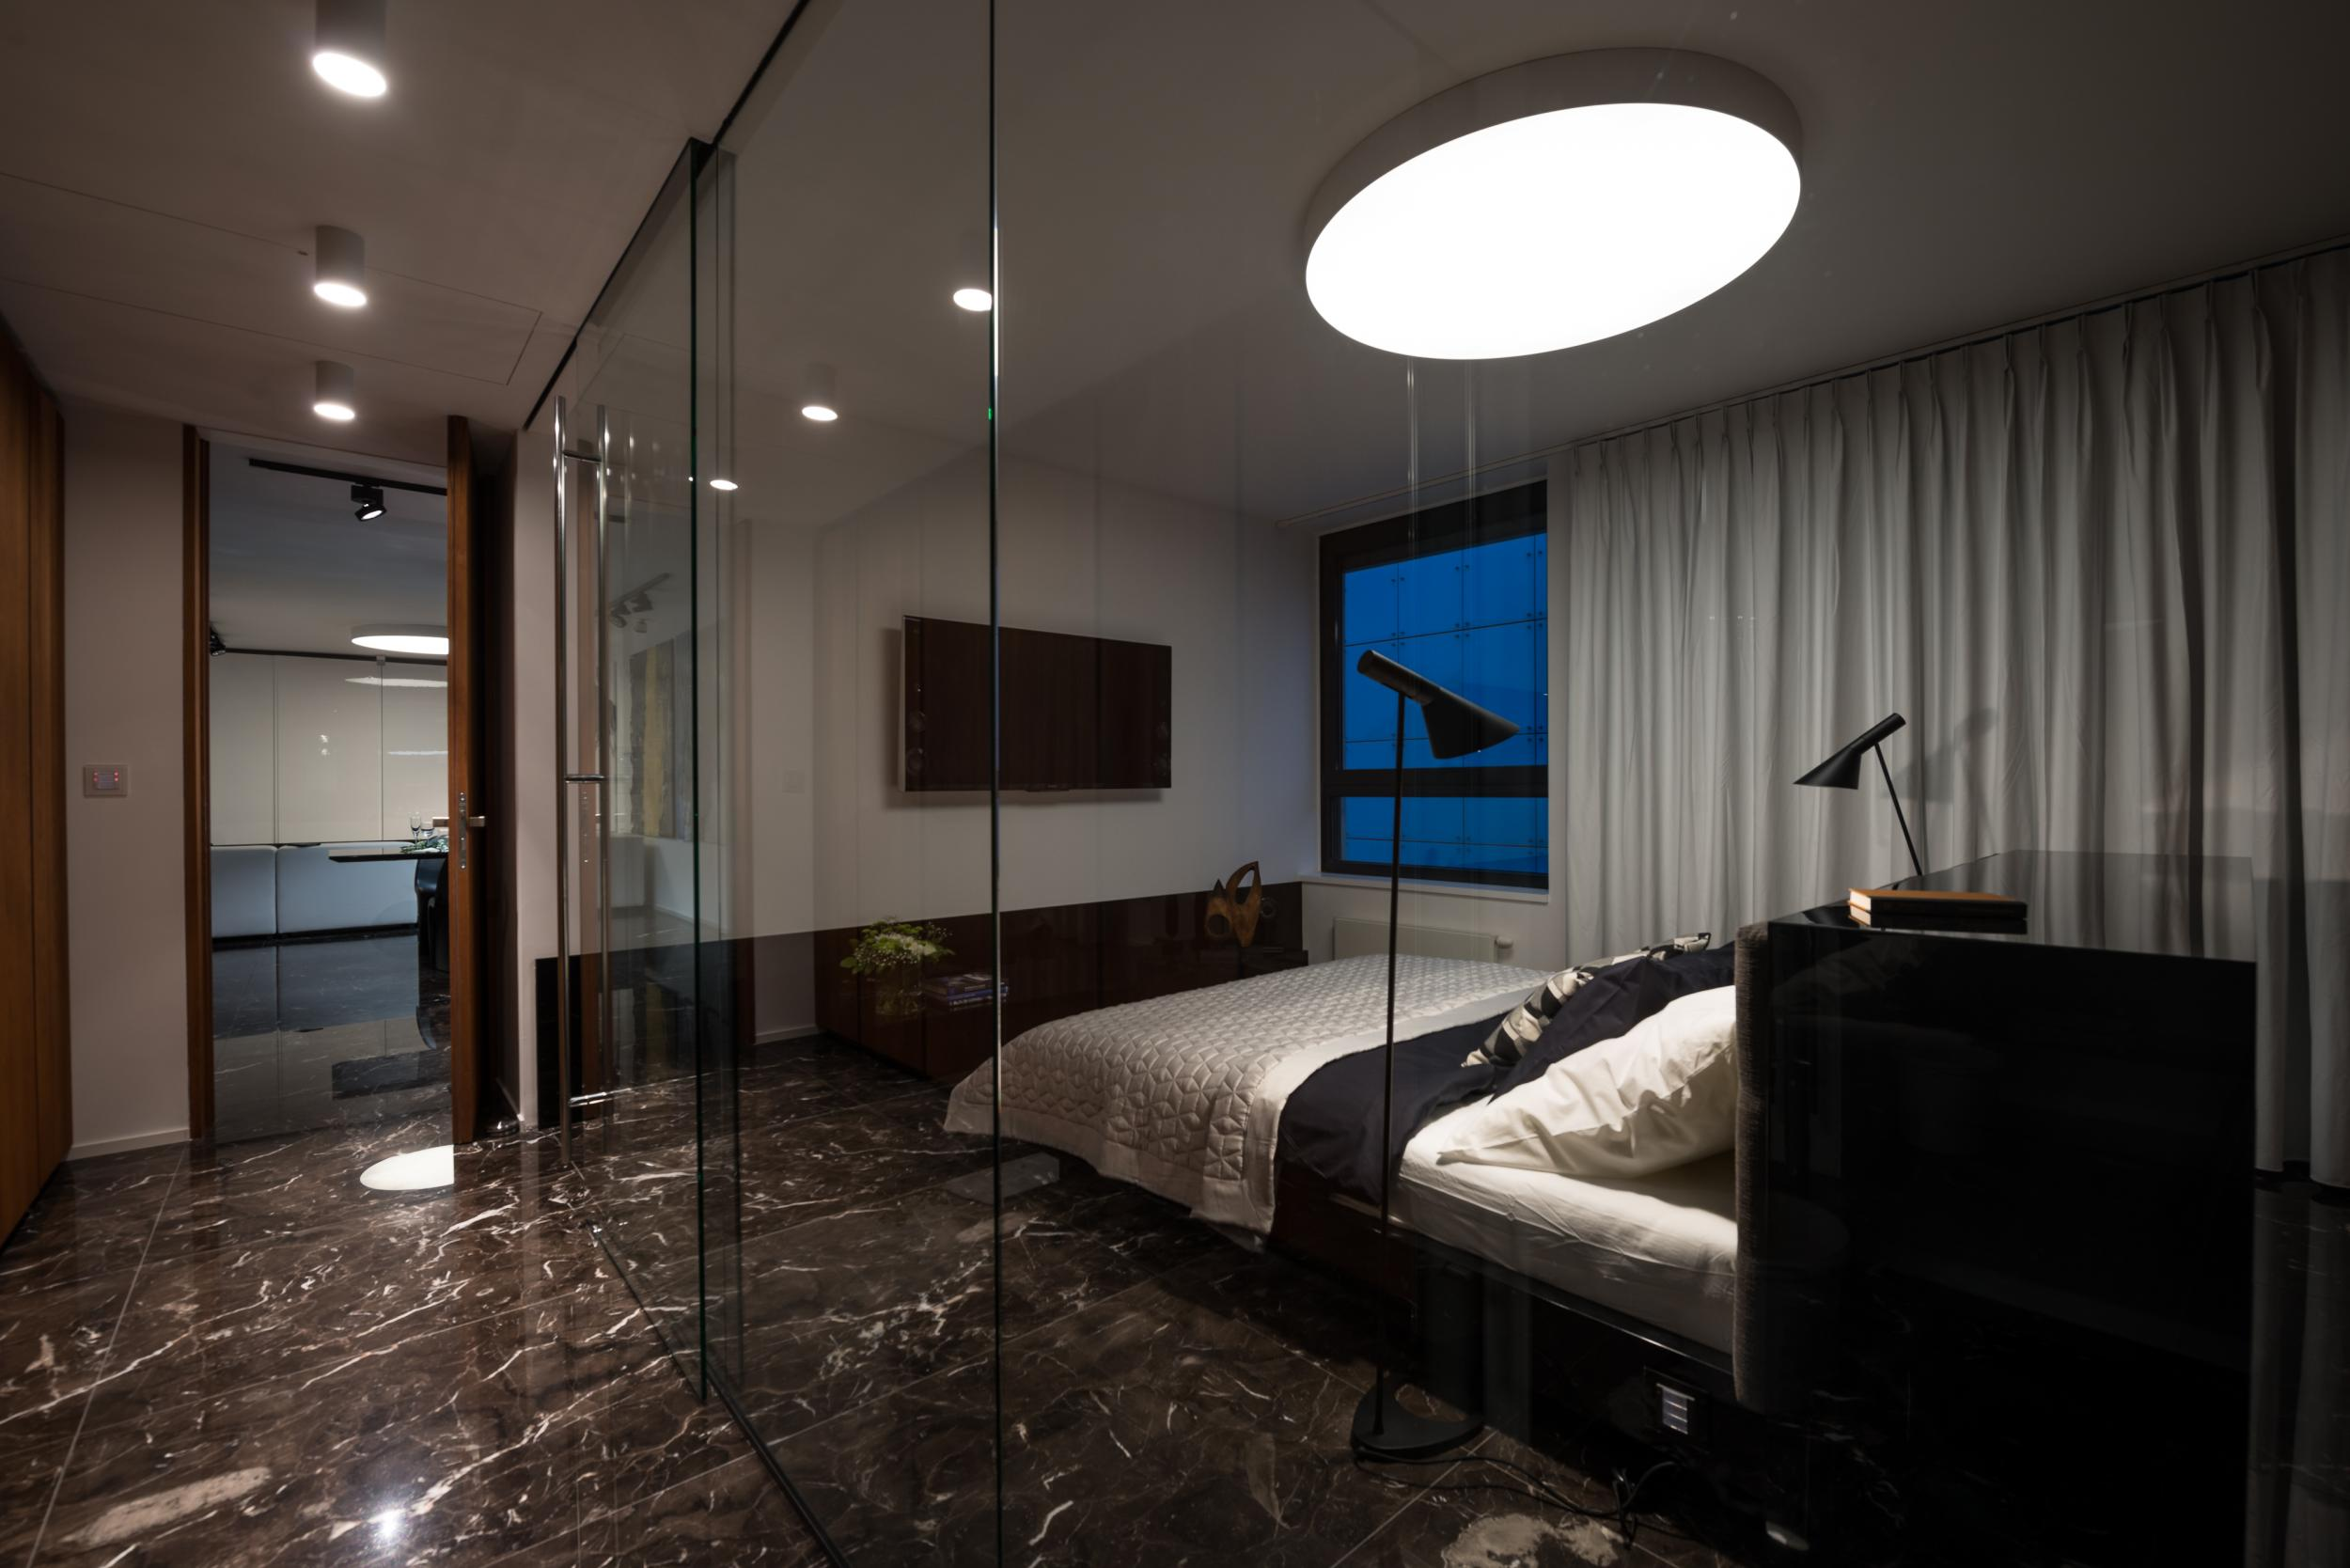 Bedroom at night time - When Necessary The Bedroom Can Be Separated From The Night Corridor By An Electric Opaque Blind Made Of The Same Material As The One In Front Of The Window